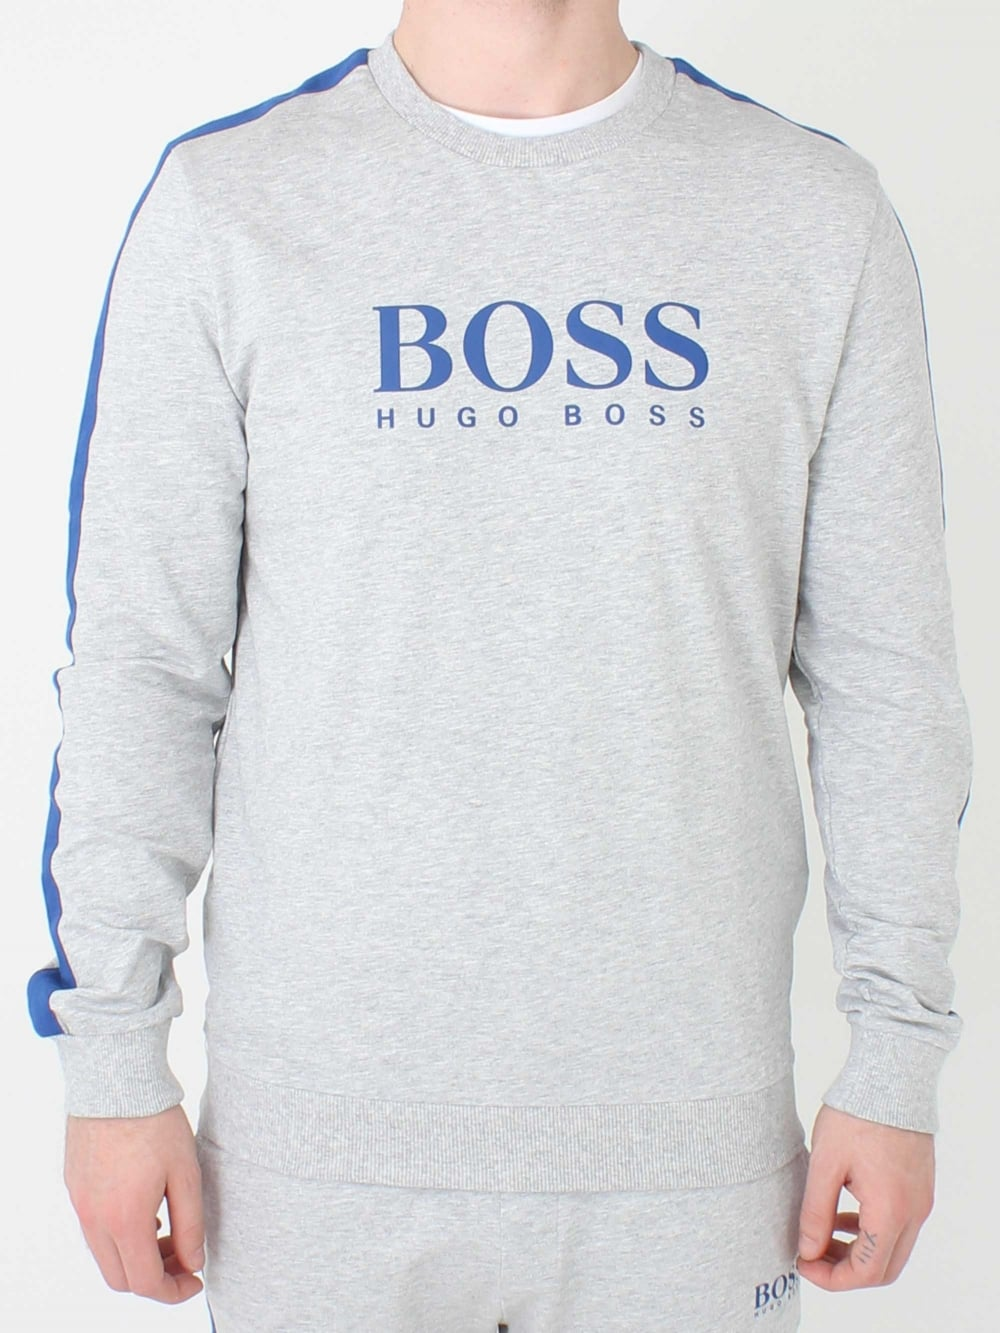 76da933bd Hugo Boss Authentic Sweatshirt in Medium Grey | Northern Threads